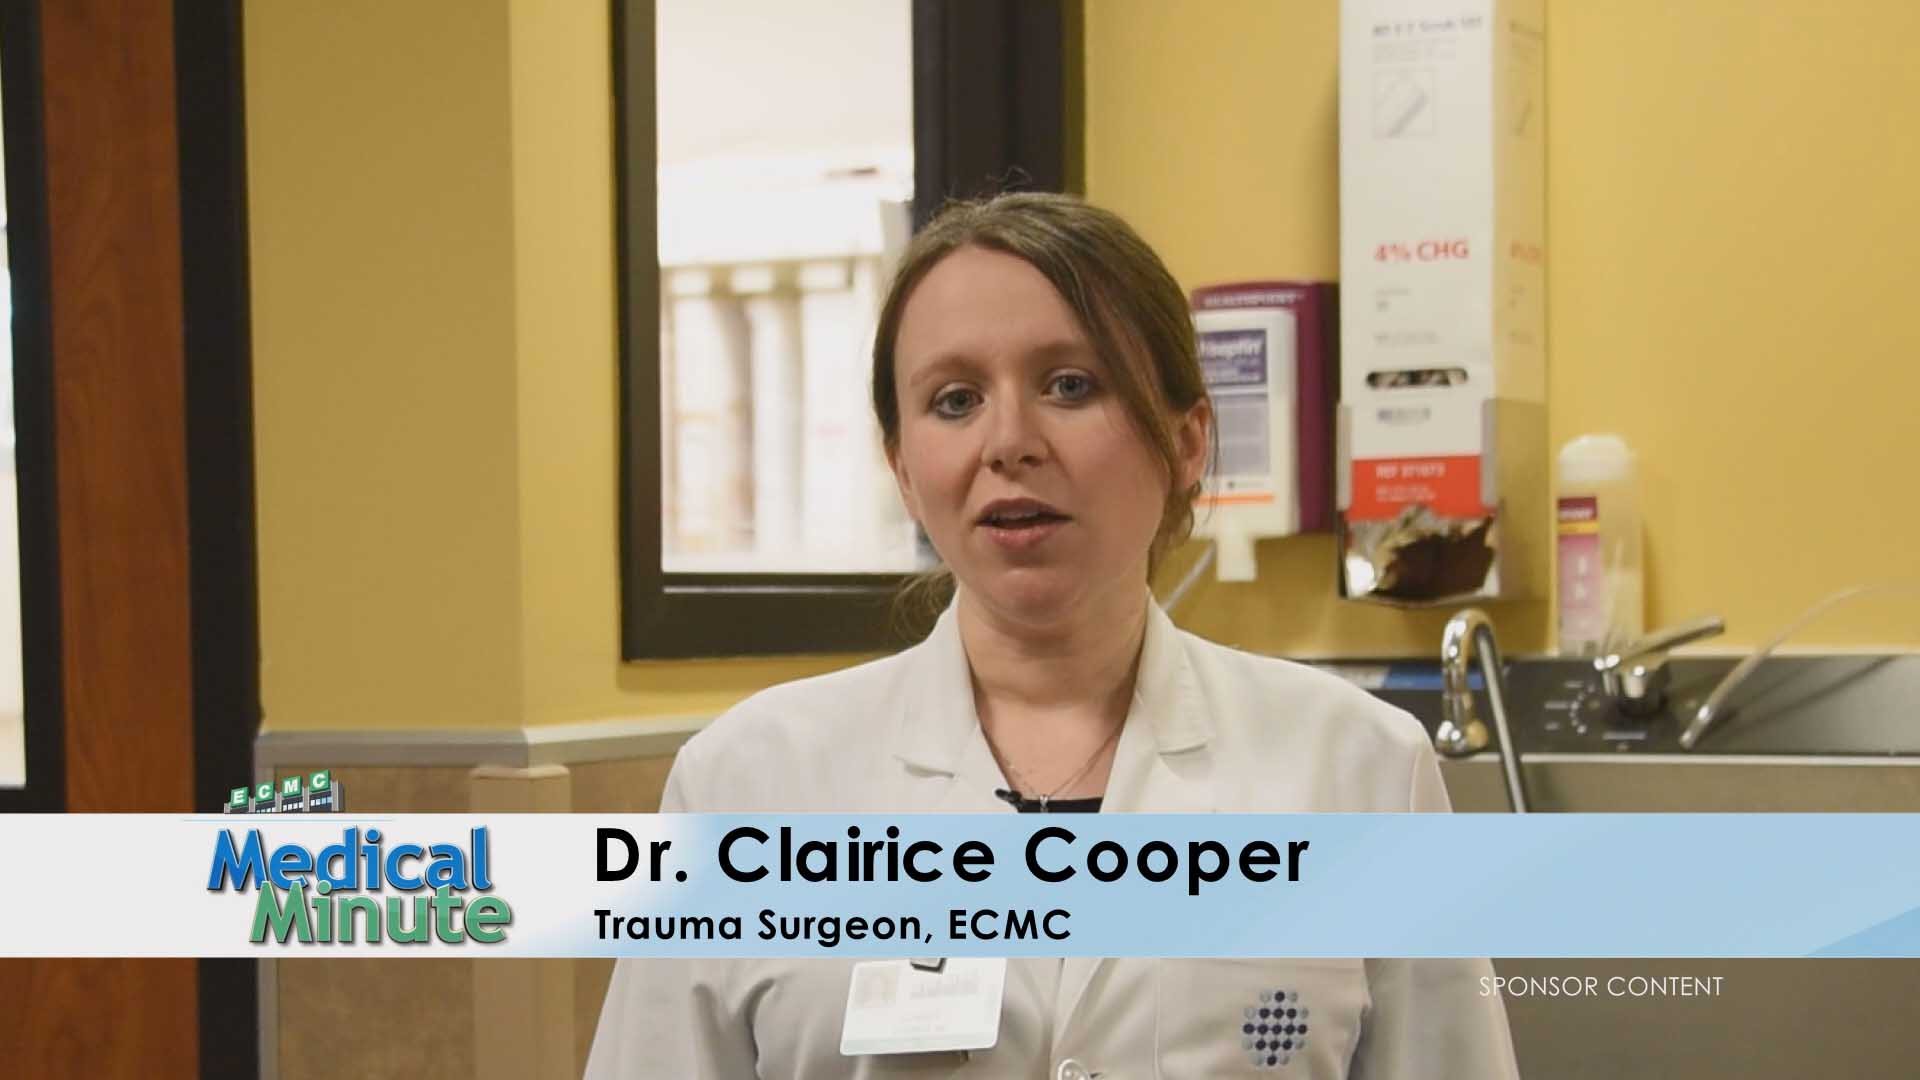 ECMC MEDICAL MINUTE DR.COOPER DROWSYDRIVING 08.15.16 still